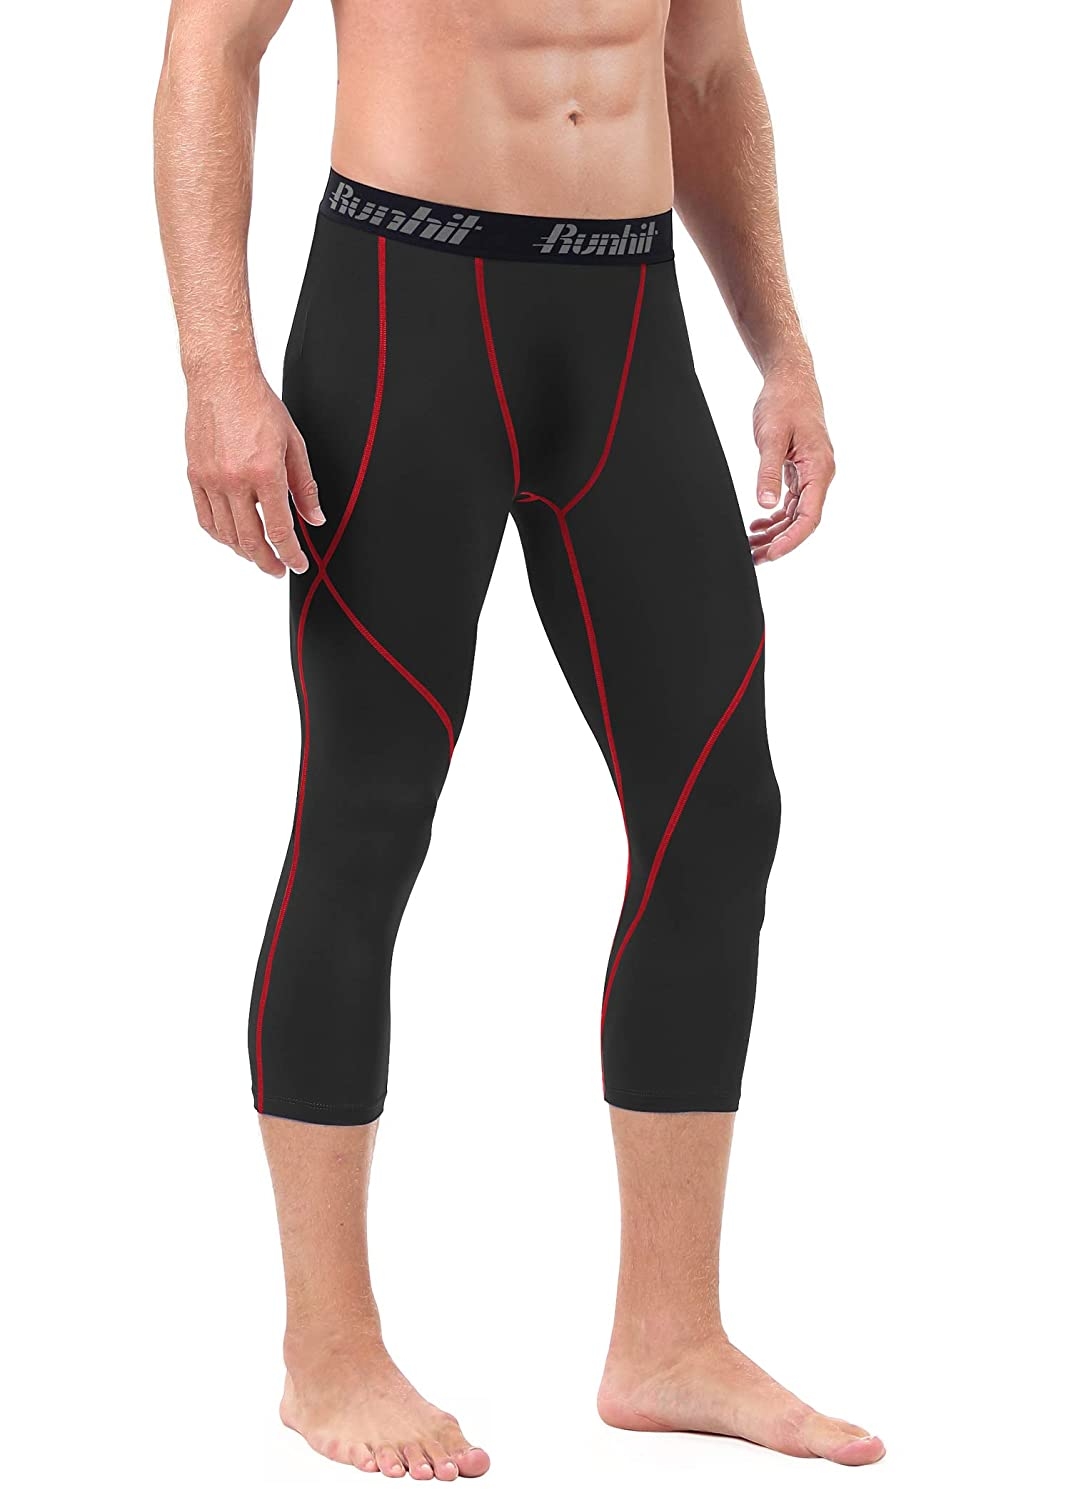 b8afc8203e893 Amazon.com: Runhit Mens 3/4 Compression Leggings Pants Capri Shorts  Baselayer Cool Dry Sport Tights: Clothing